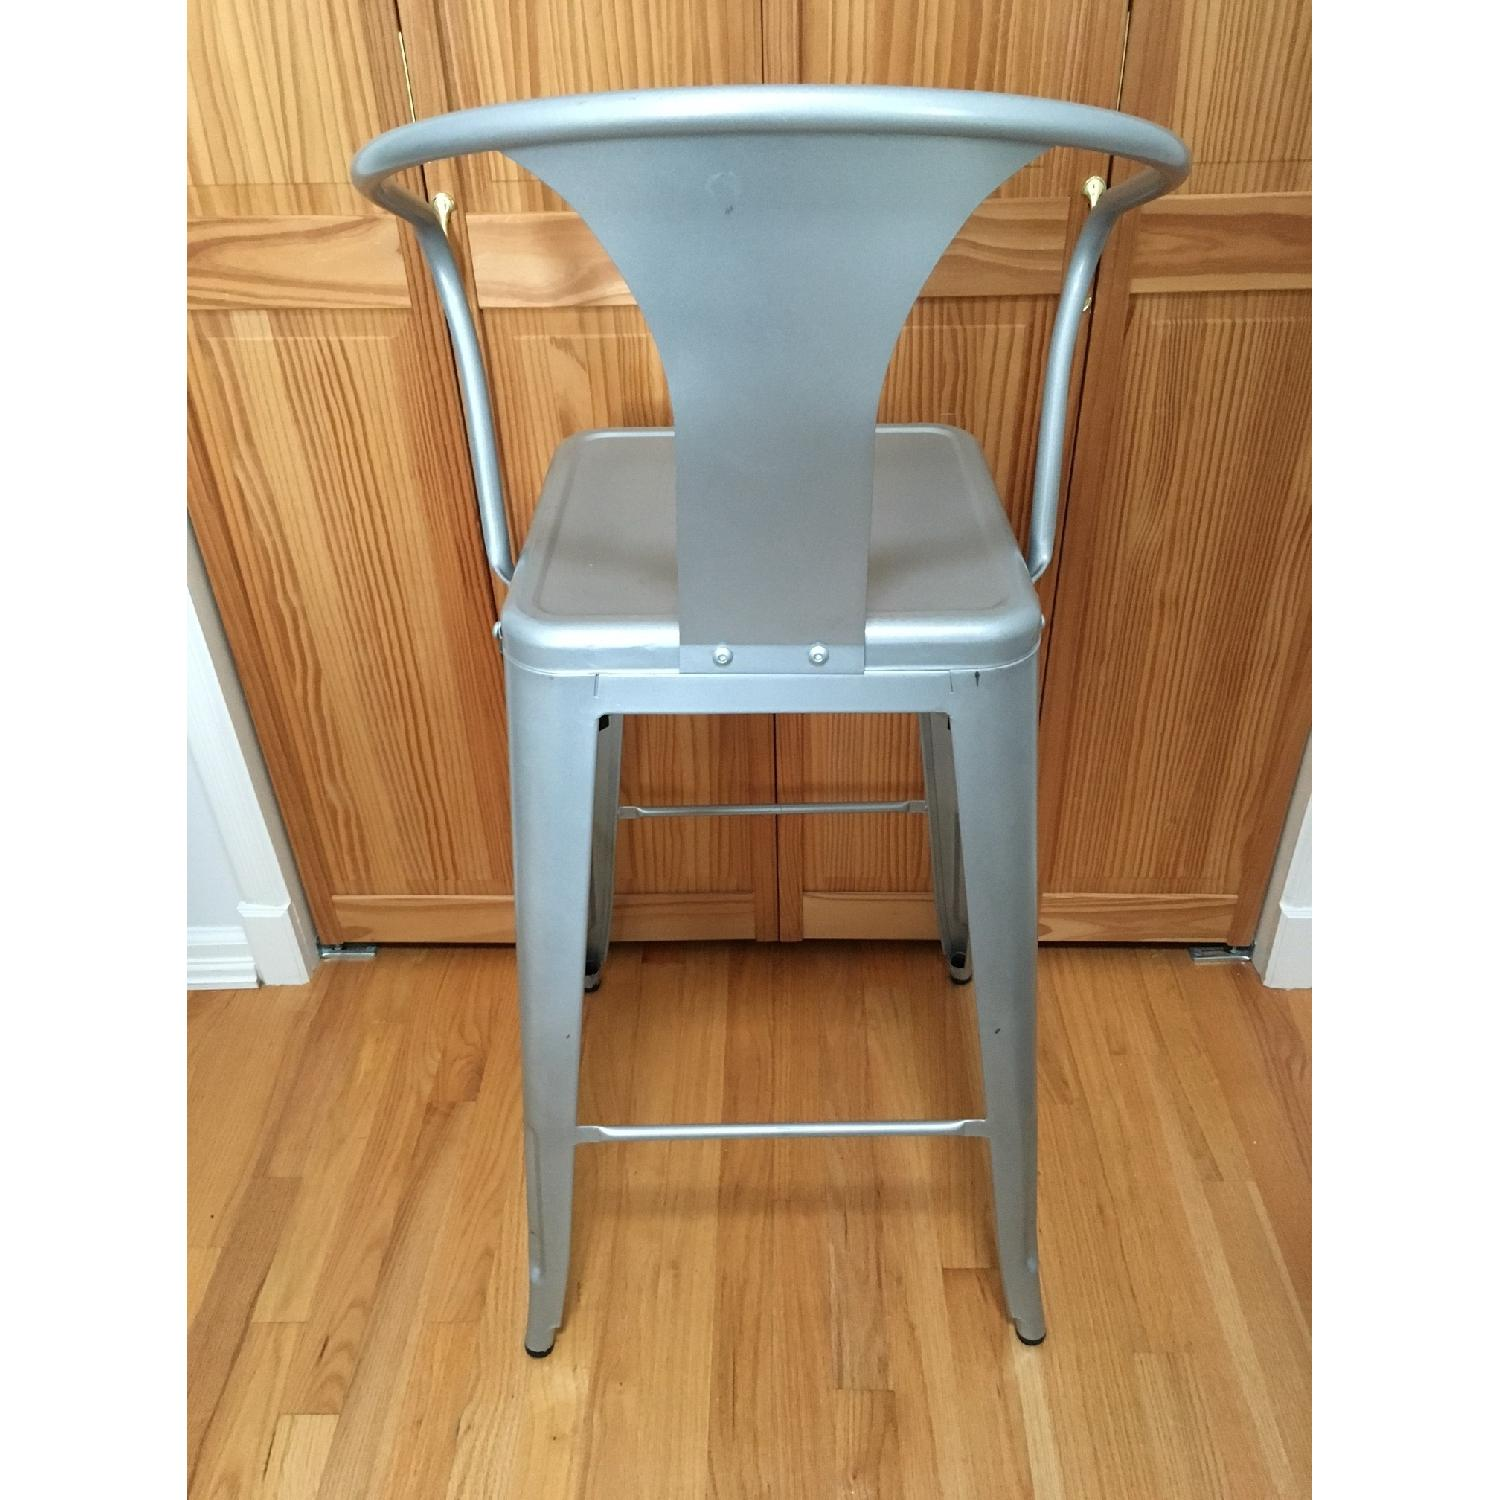 Silver Metal Bar Stools w/ Backrest-2